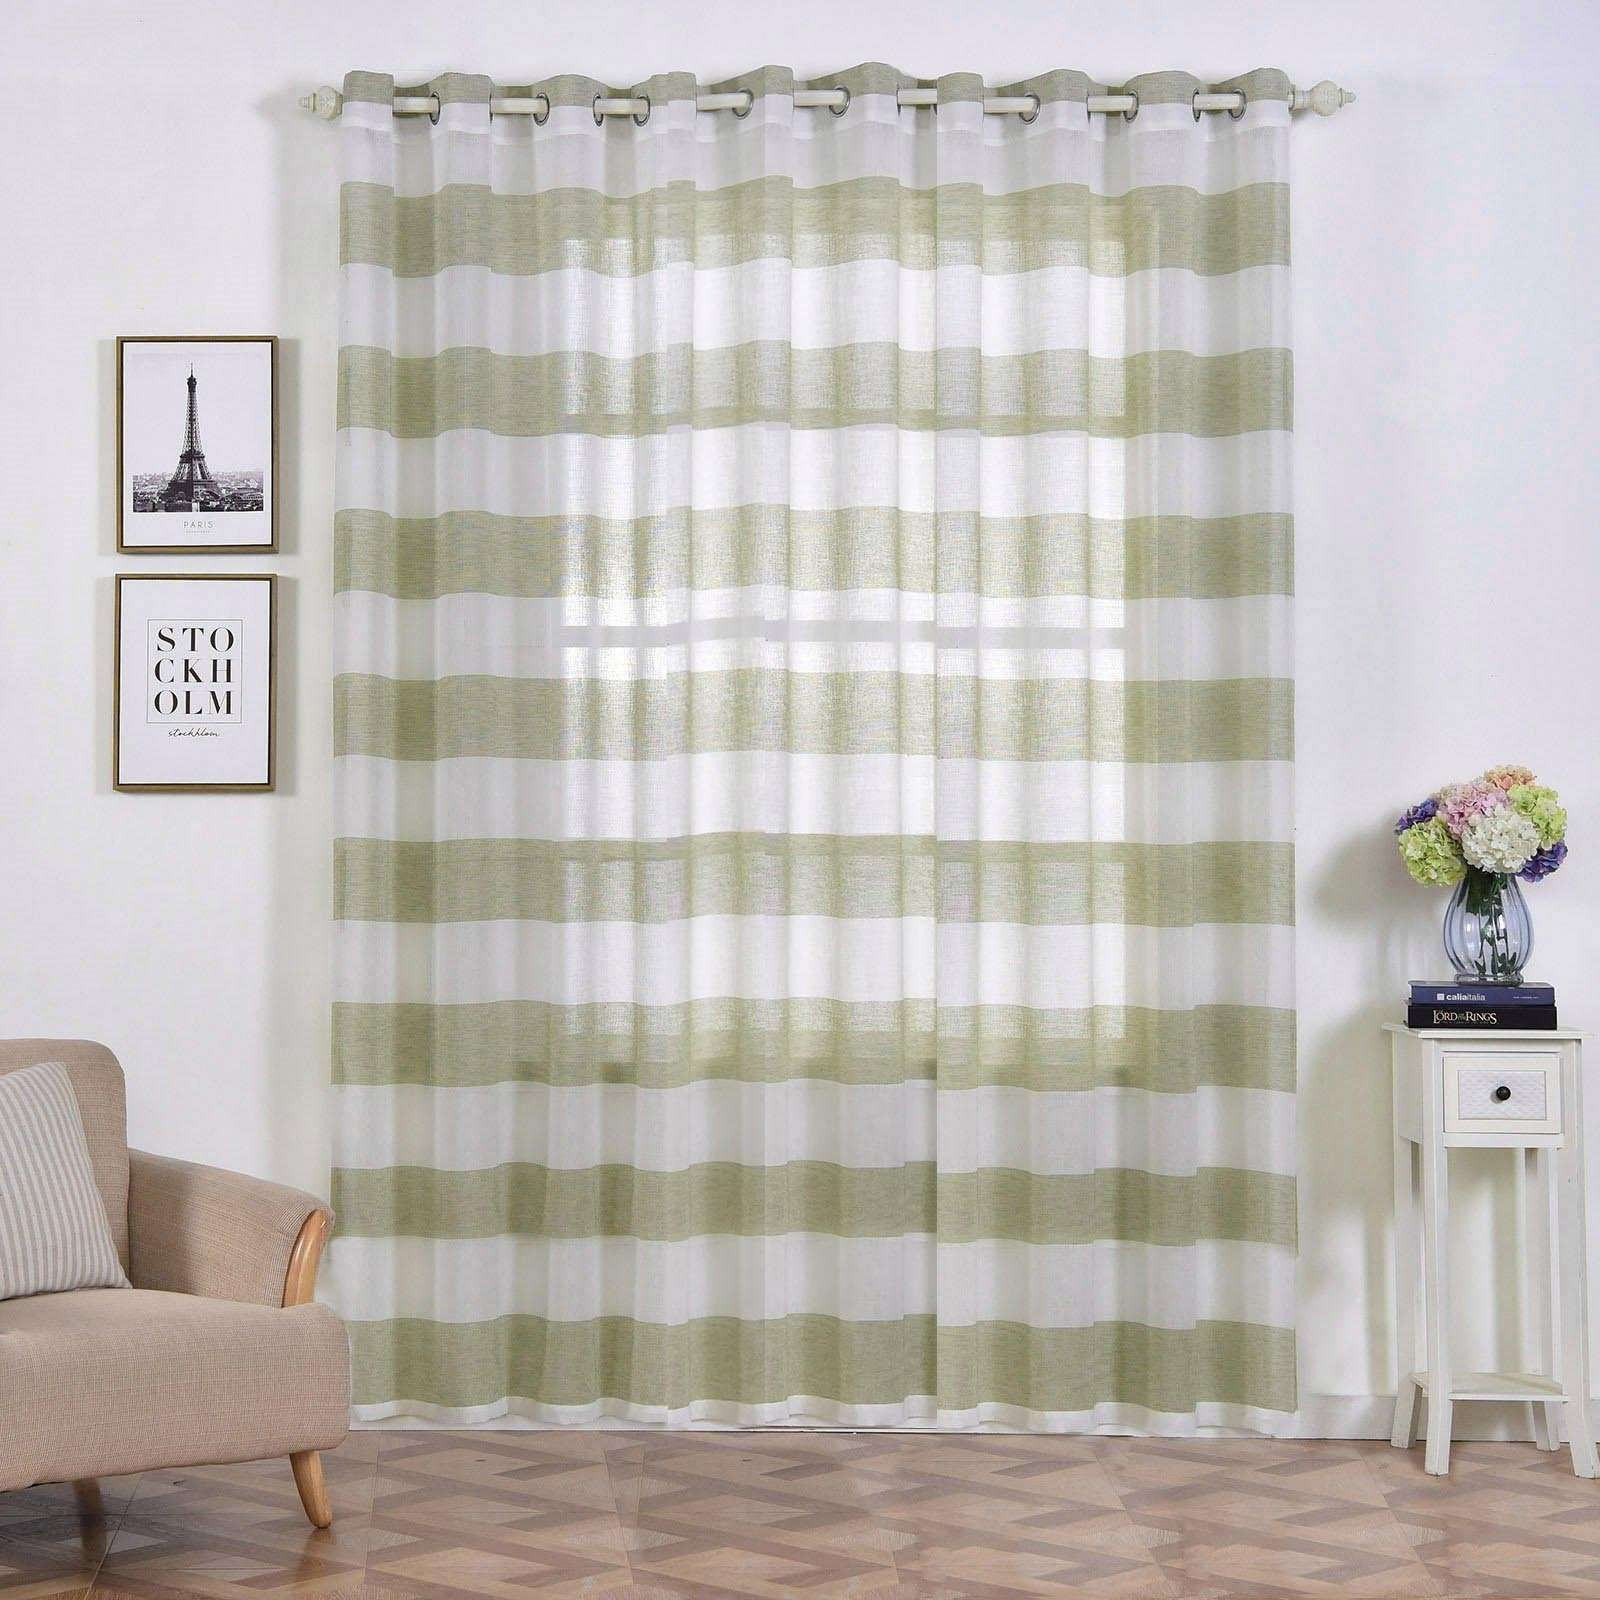 2 Pack 52 X 96 Cabana Print Faux Linen Curtain Panels With Chrome Grommet White Sage Green